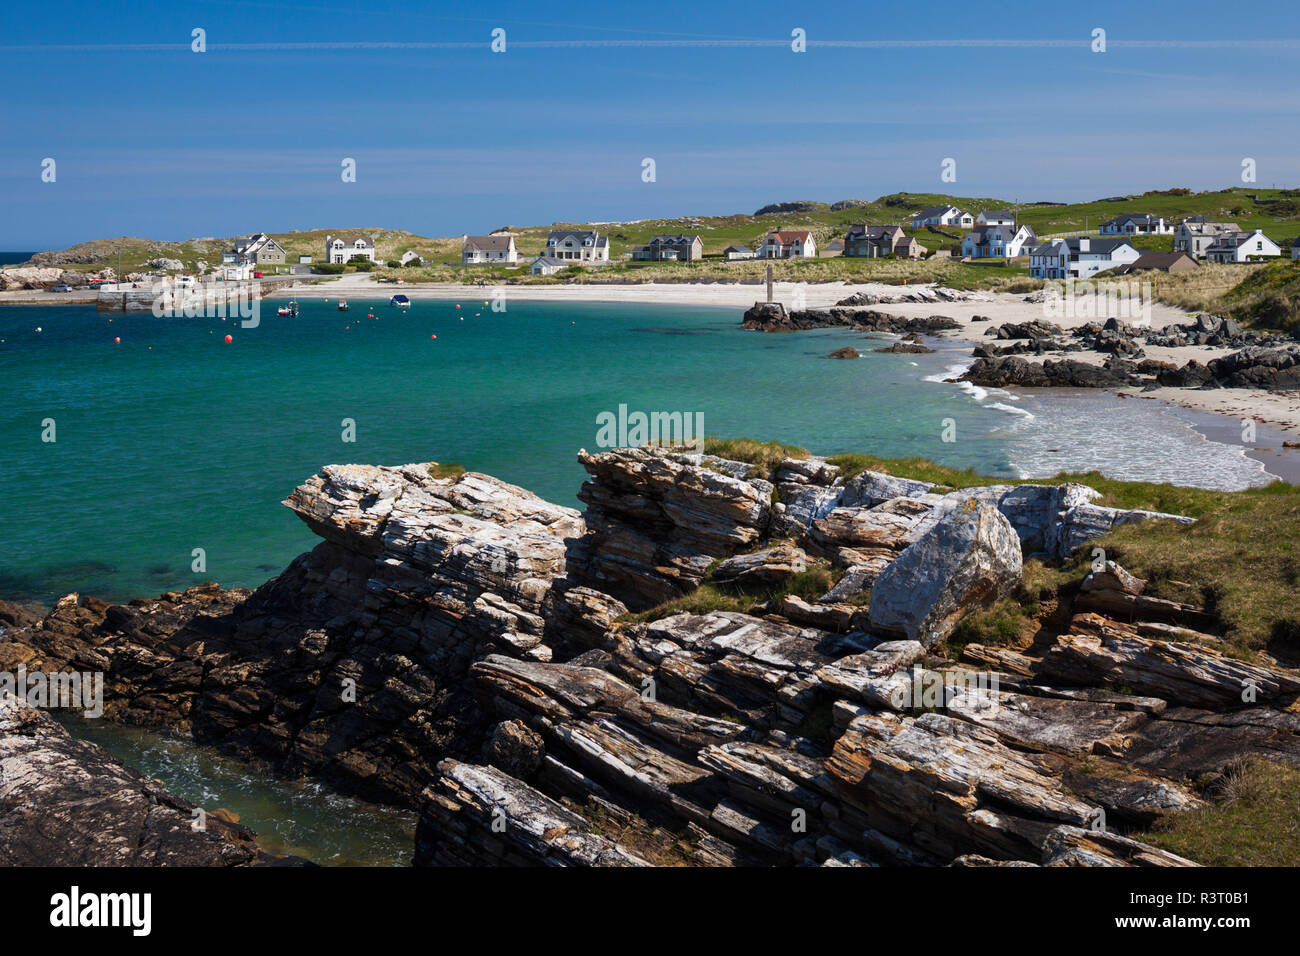 Ireland, County Donegal, Dunfanaghy, small harbor - Stock Image